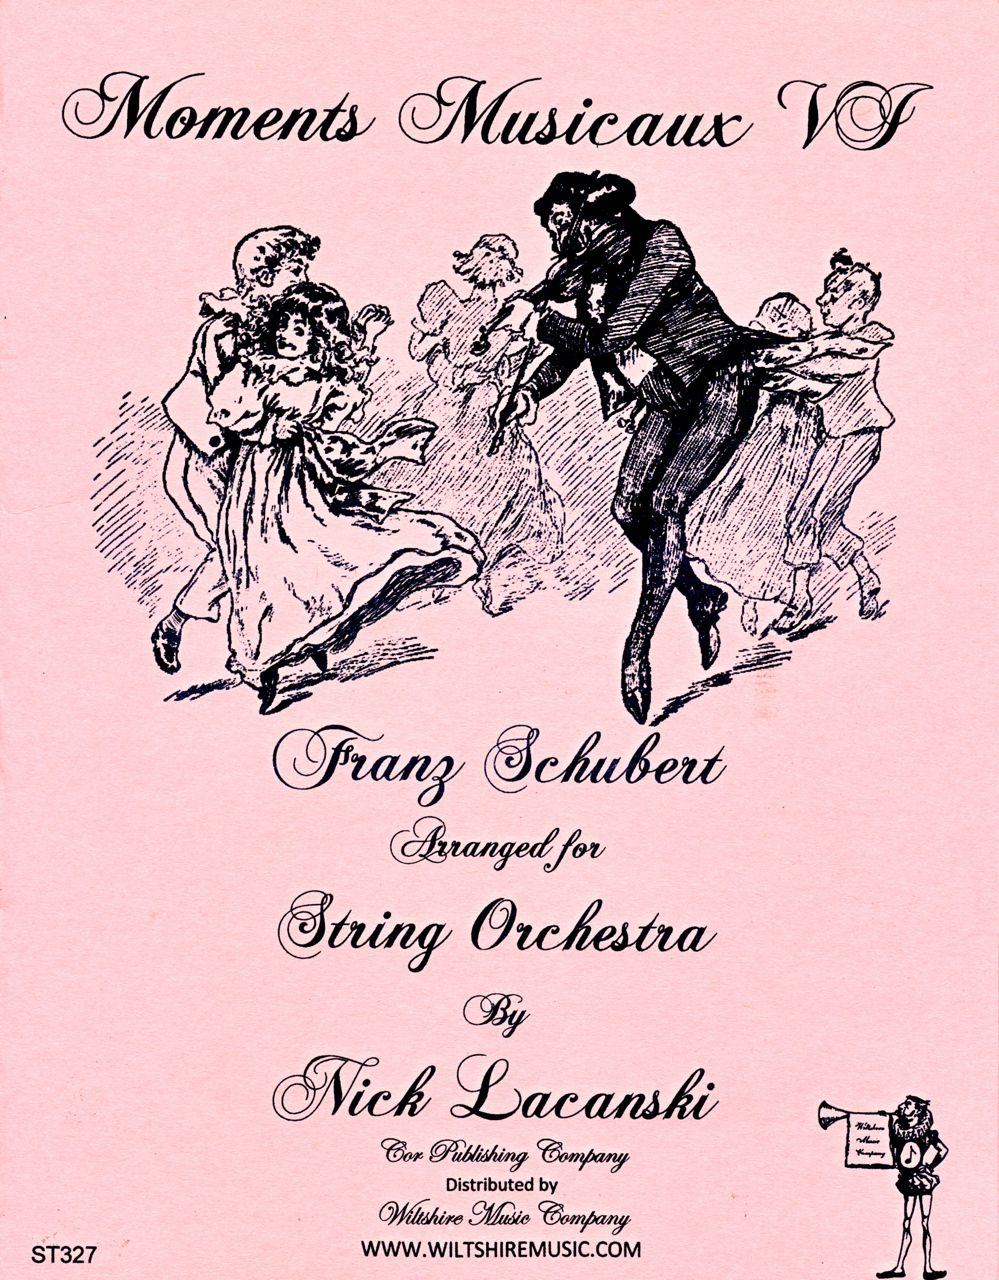 Moments Musicaux VI, FranzSchubert (Lacanski)